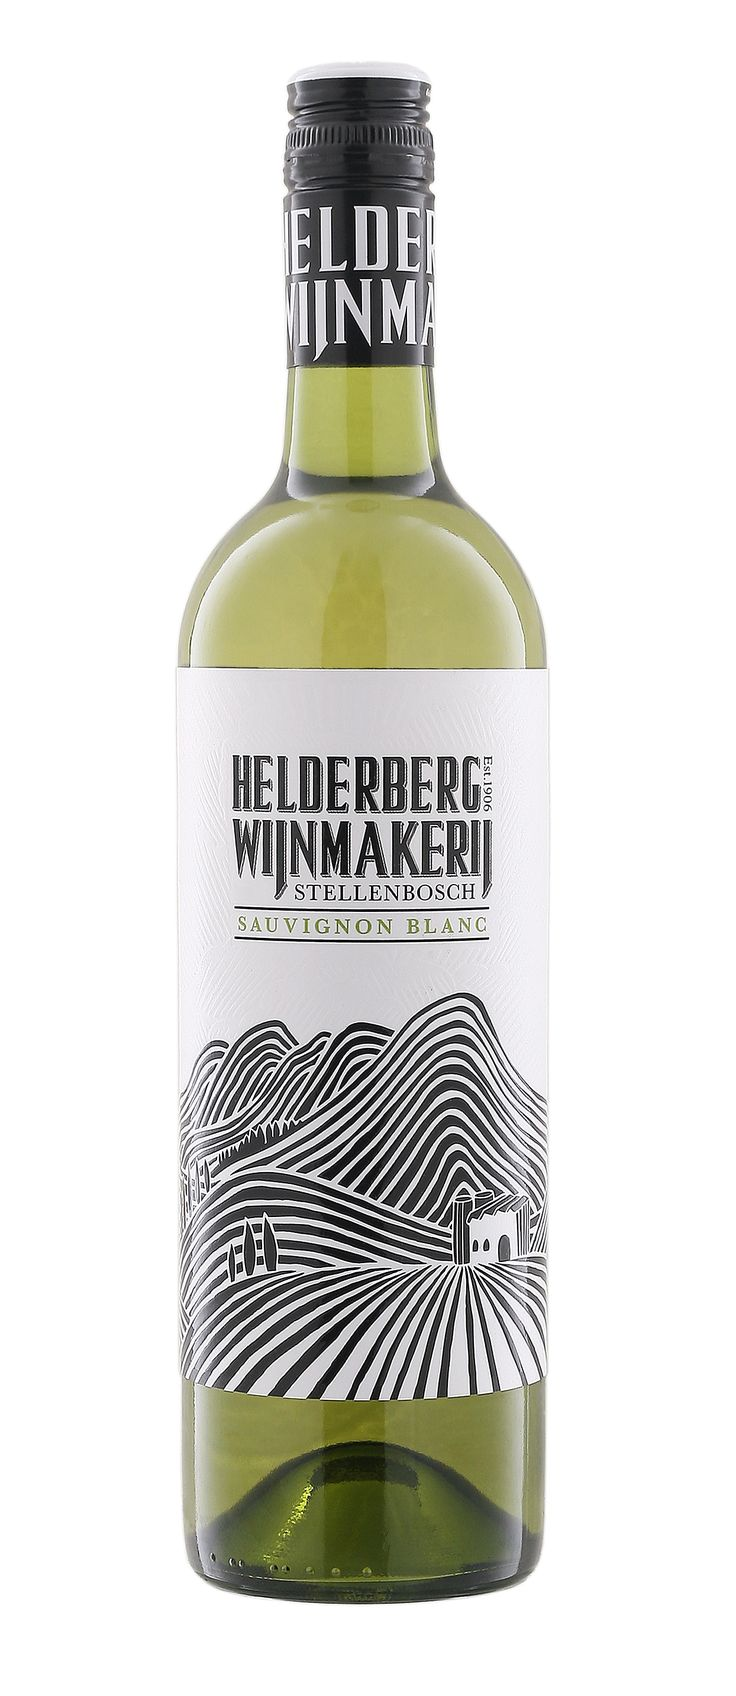 Helderberg Wijnmakerij (South Africa) wine